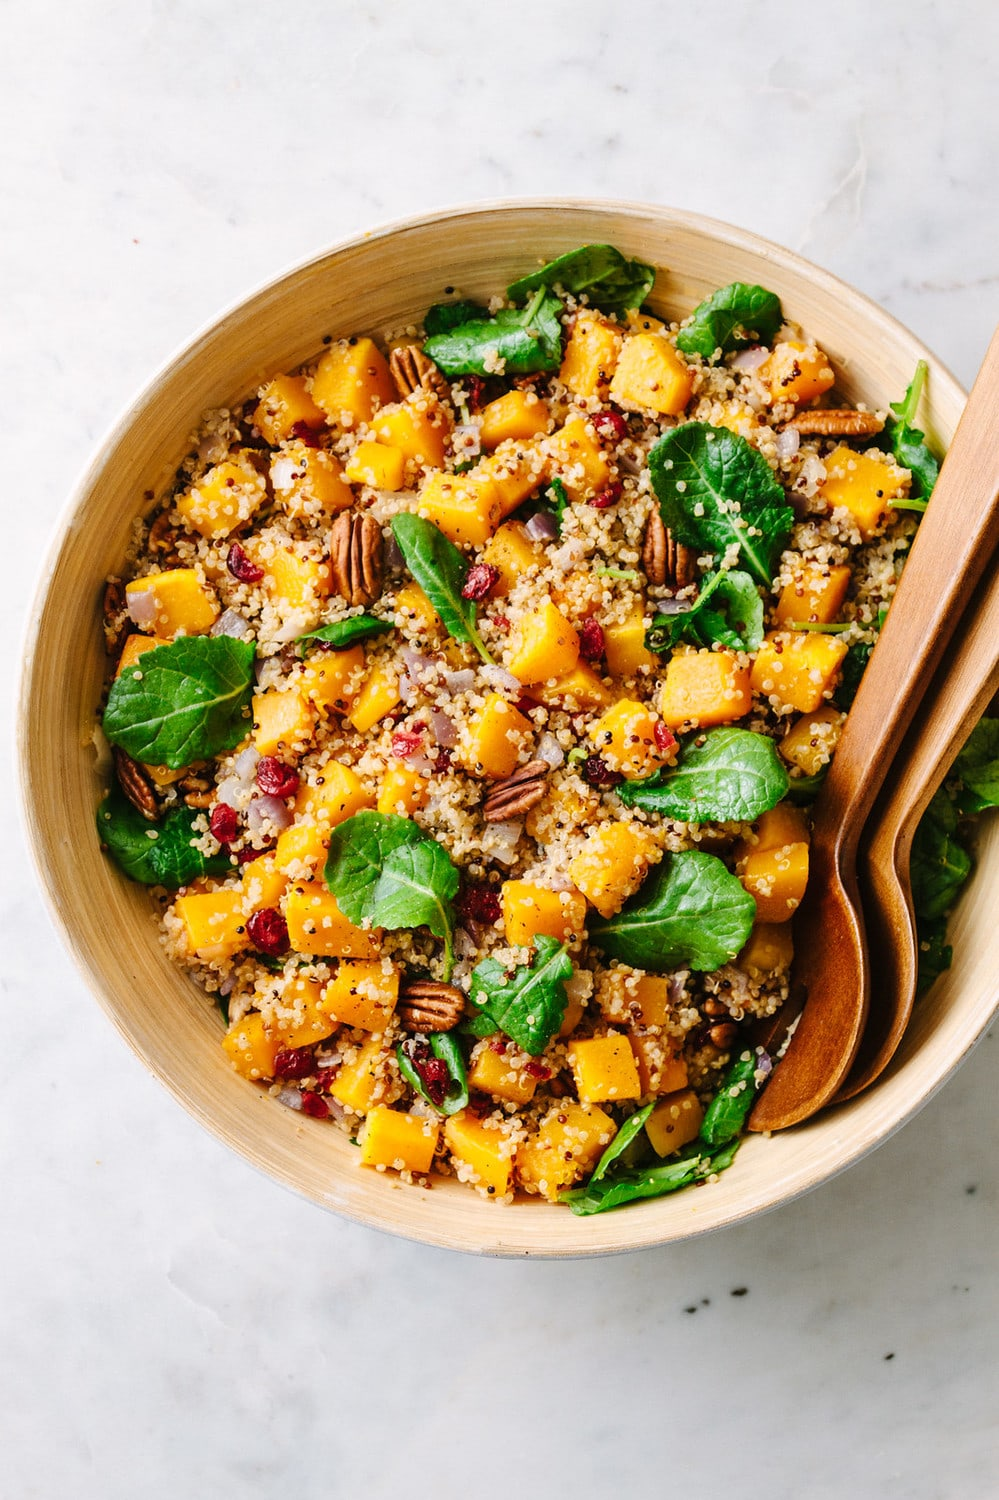 top down view of a serving bowl filled with butternut squash quinoa salad with wooden serving utensils